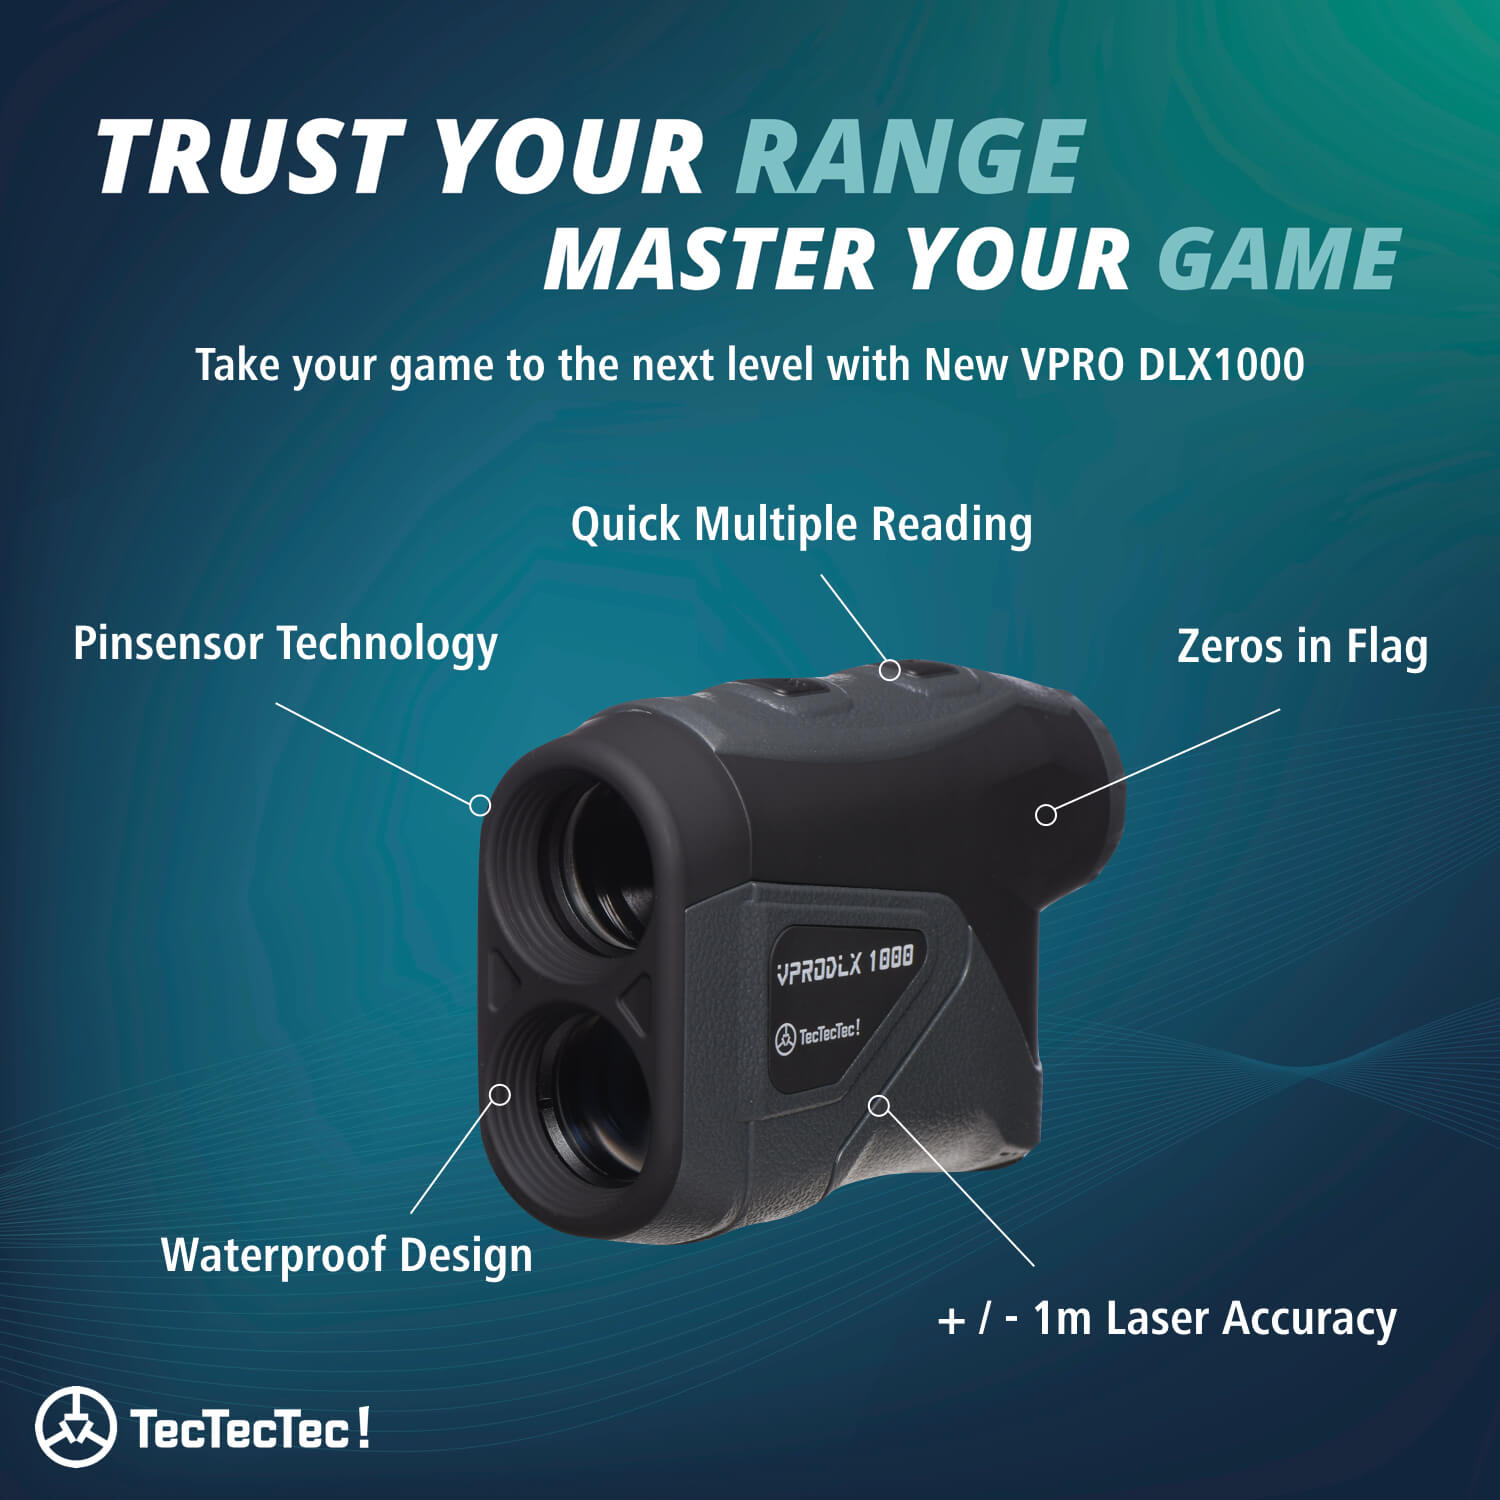 TecTecTec Trust Your Range Master Your Game VPRODLX 1K Rangefinder Technology